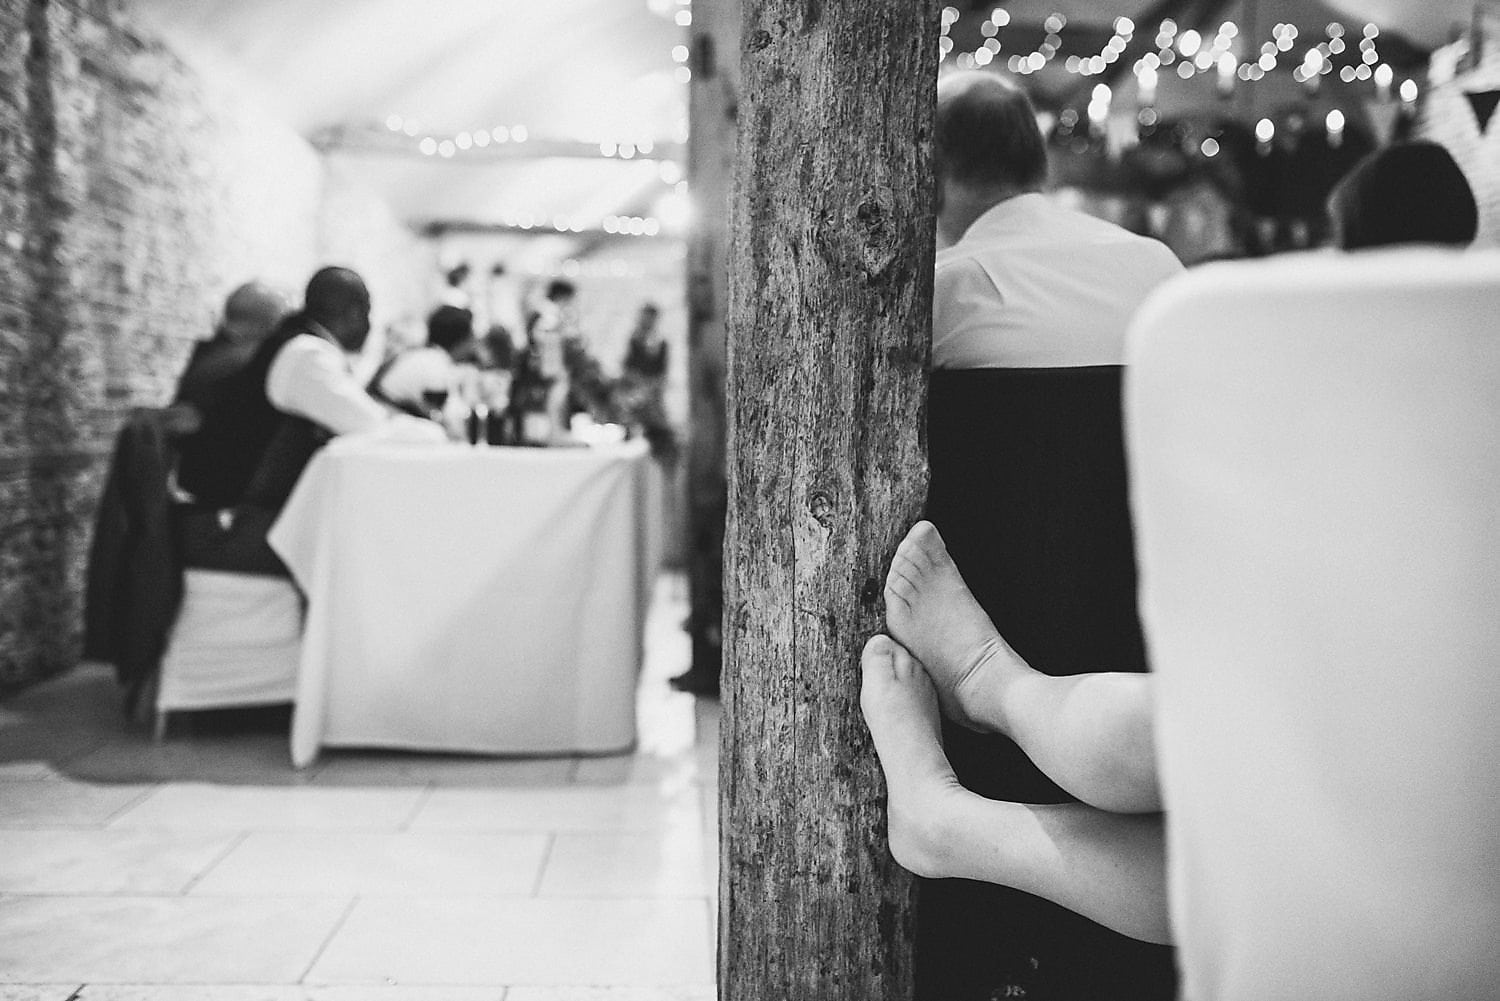 Wedding guests putting her feet up at Upwaltham Barns during the wedding speeches